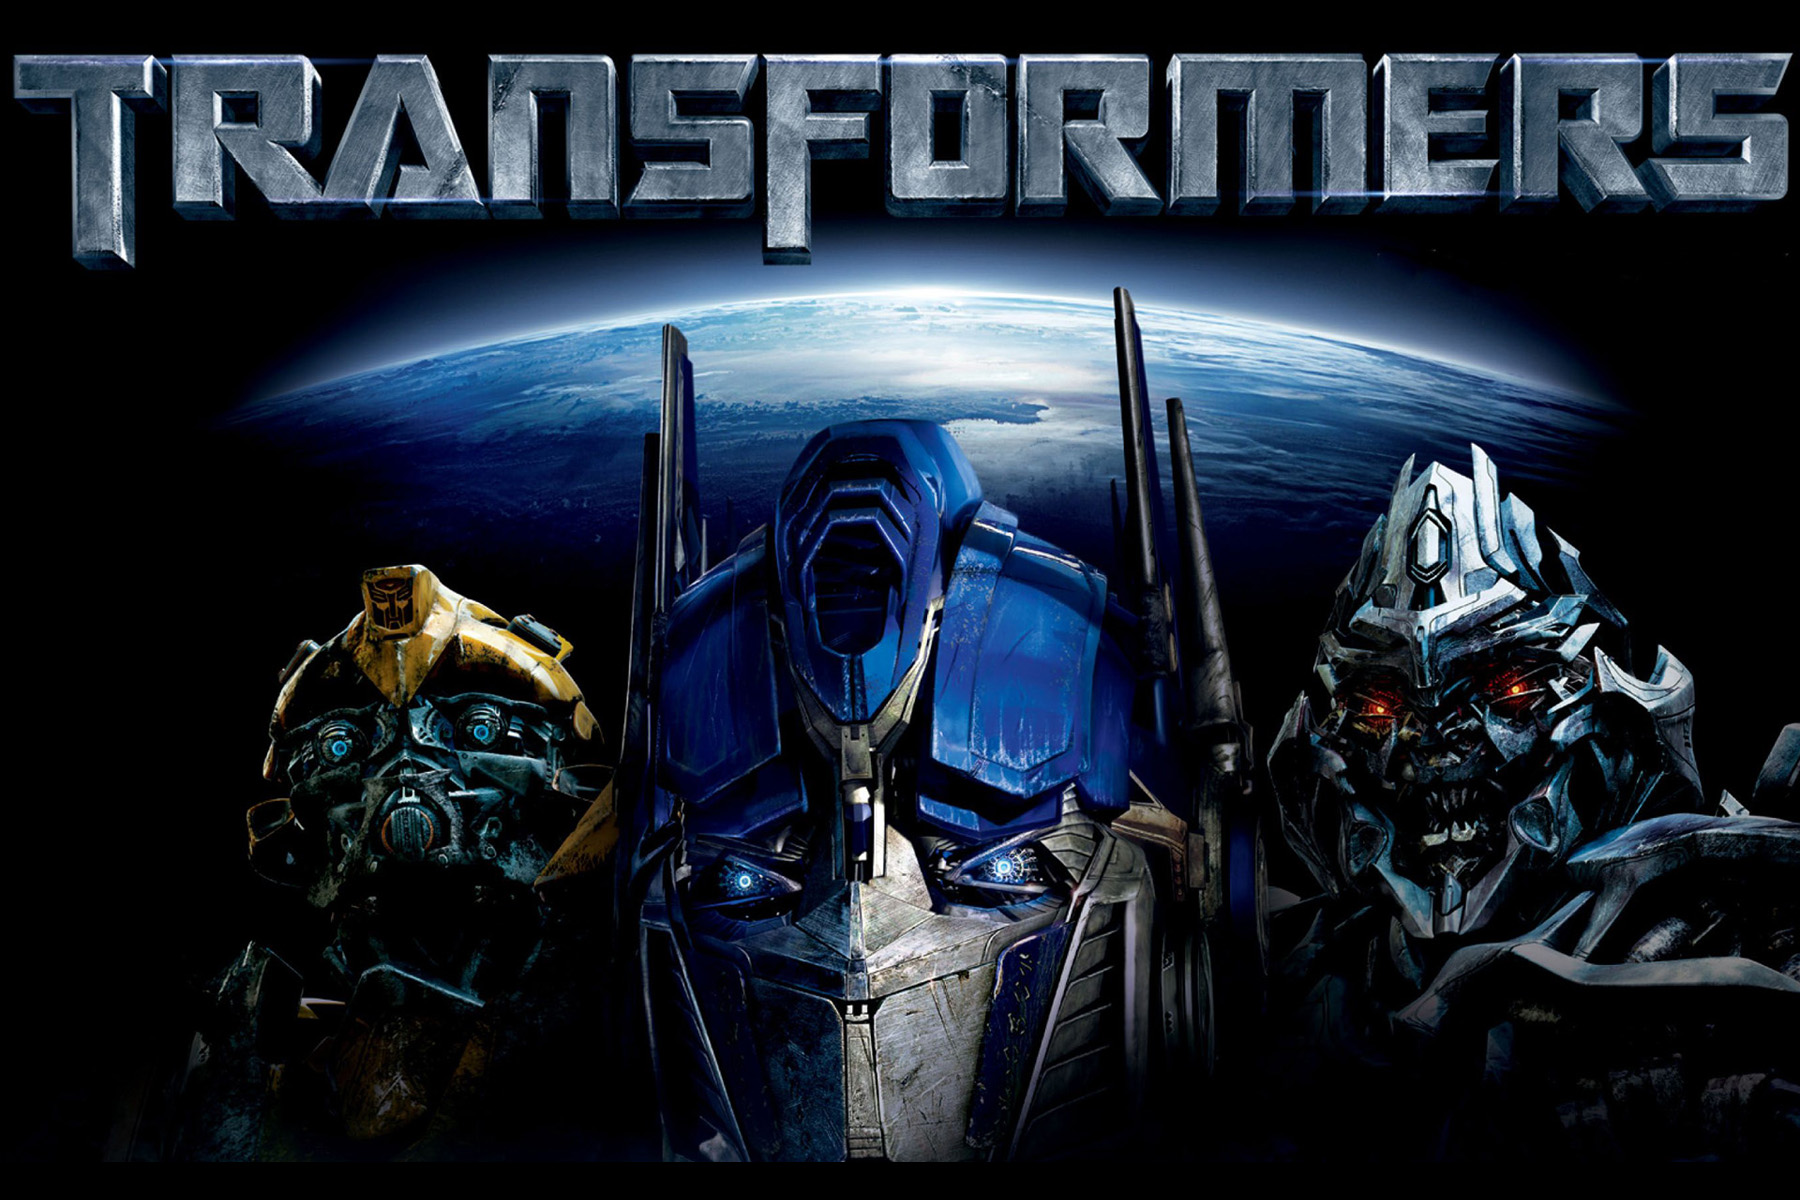 printable transformers movie trading cards 6 u2033 x 4 u2033 photo size